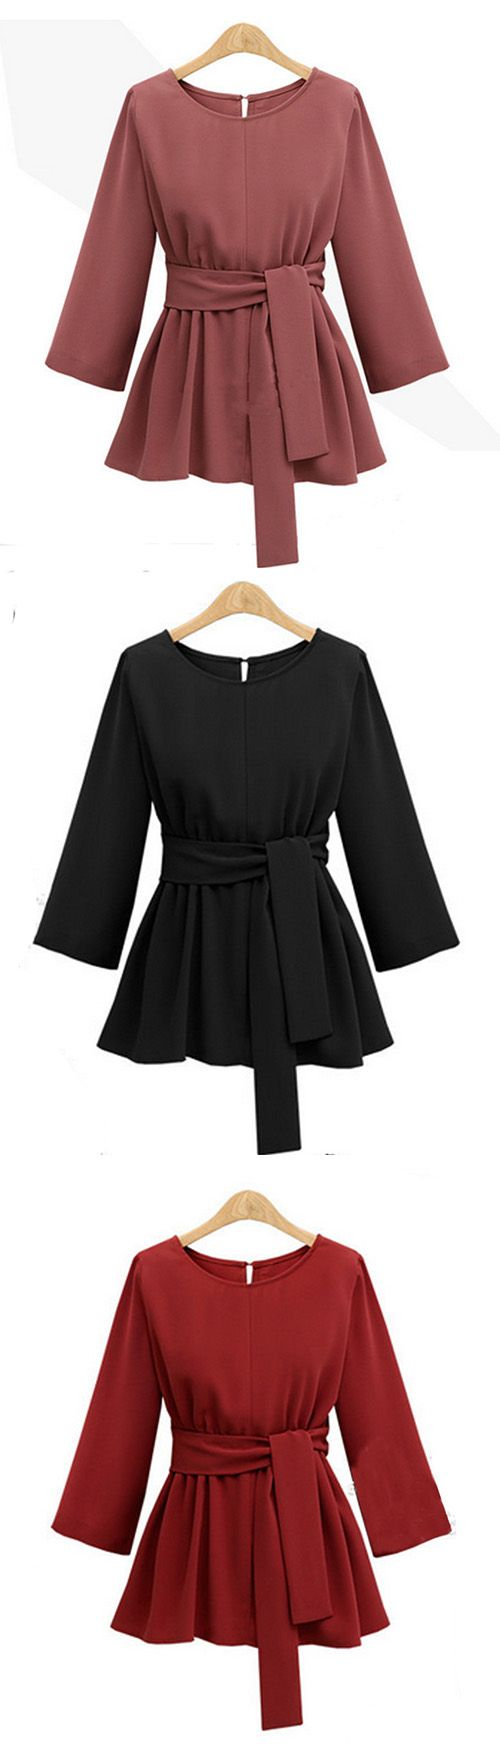 Women's Plus Size Going out Punk & Gothic Sophisticated Fall Winter Blouse